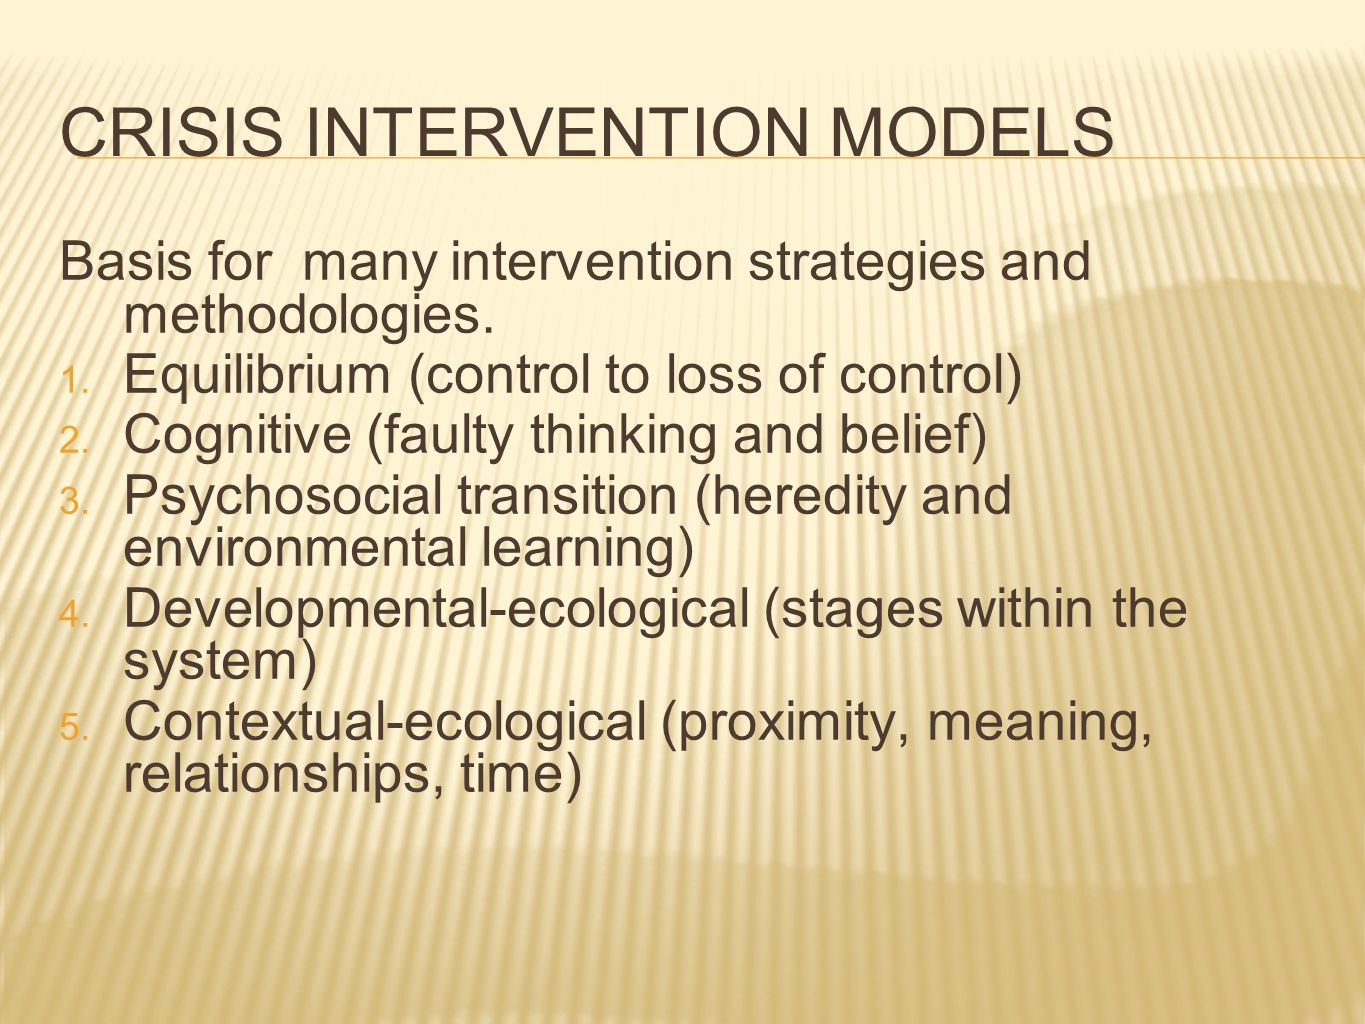 crisis intervention issues essay Abc model of crisis intervention - essay example extract of sample abc model of crisis intervention tags: in most cases, crisis involves issues of threat.